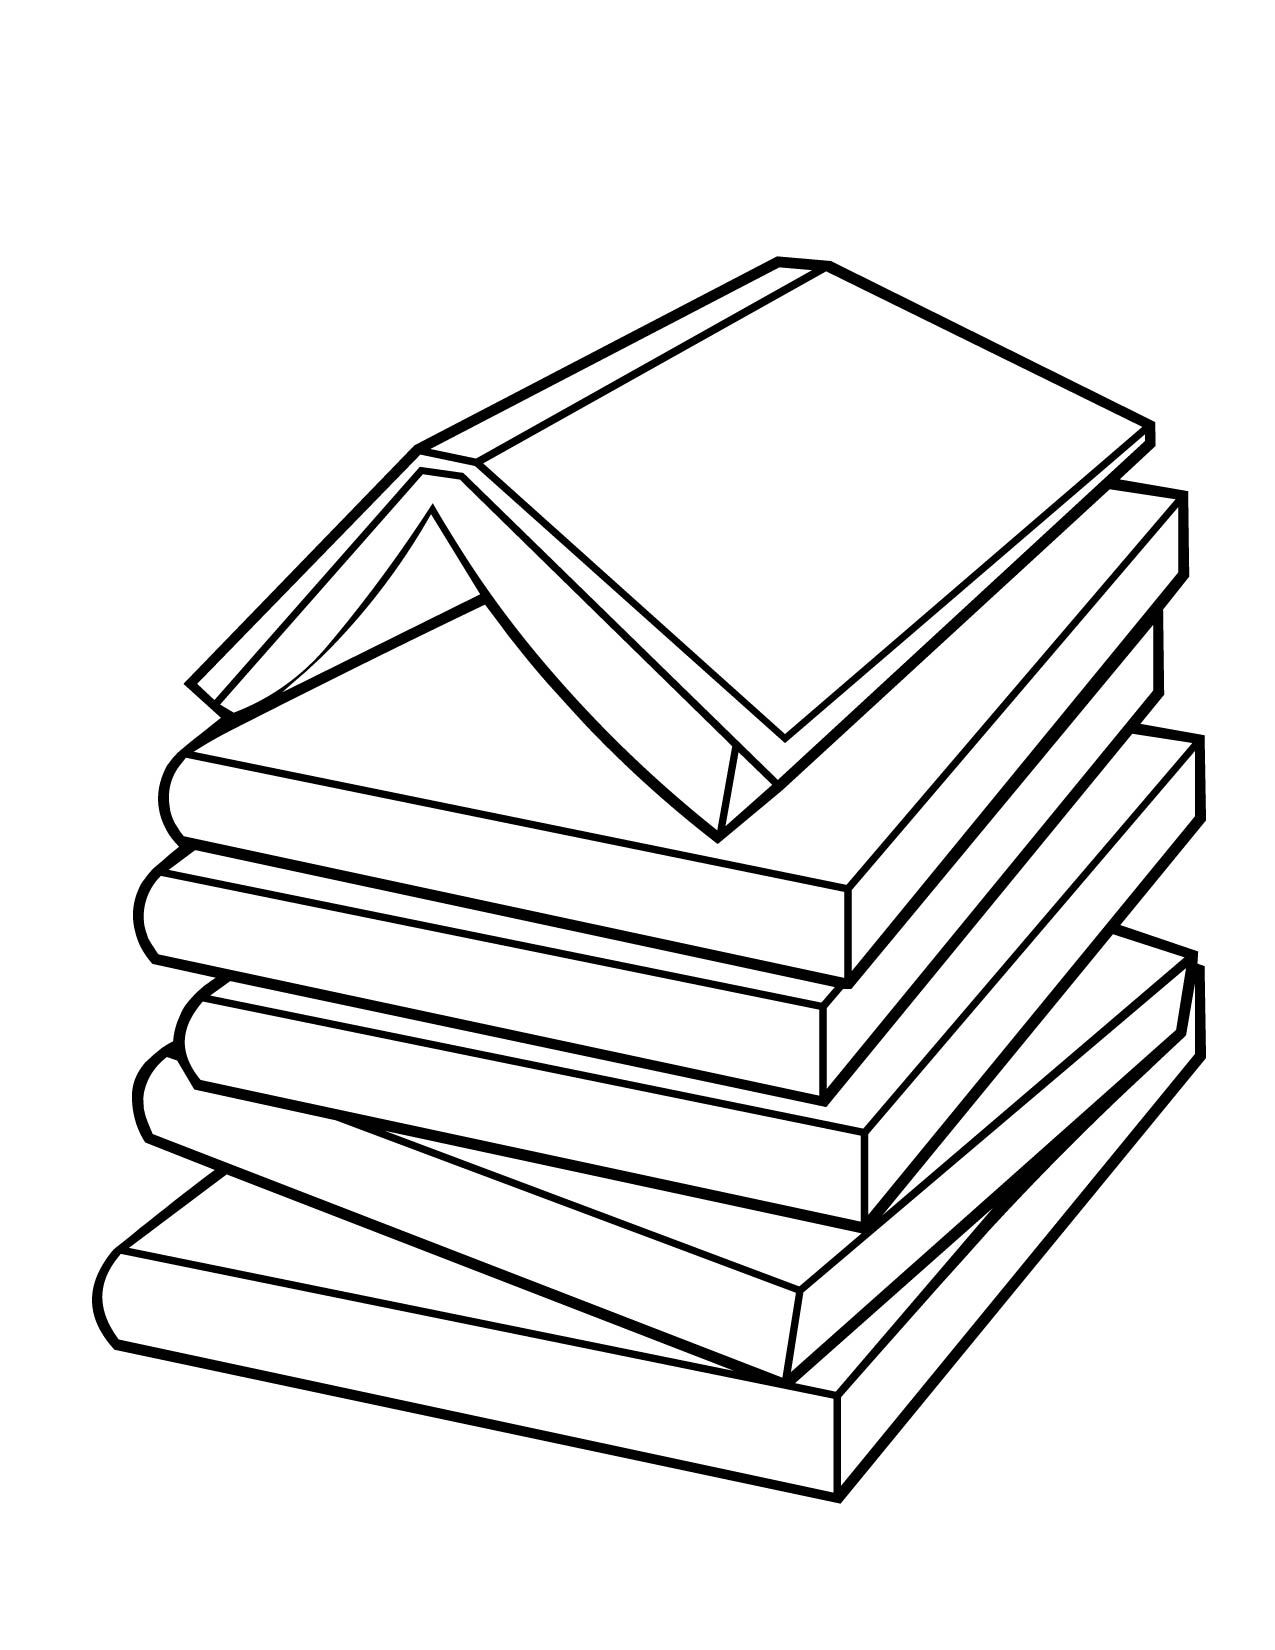 books coloring page - Book Coloring Pages